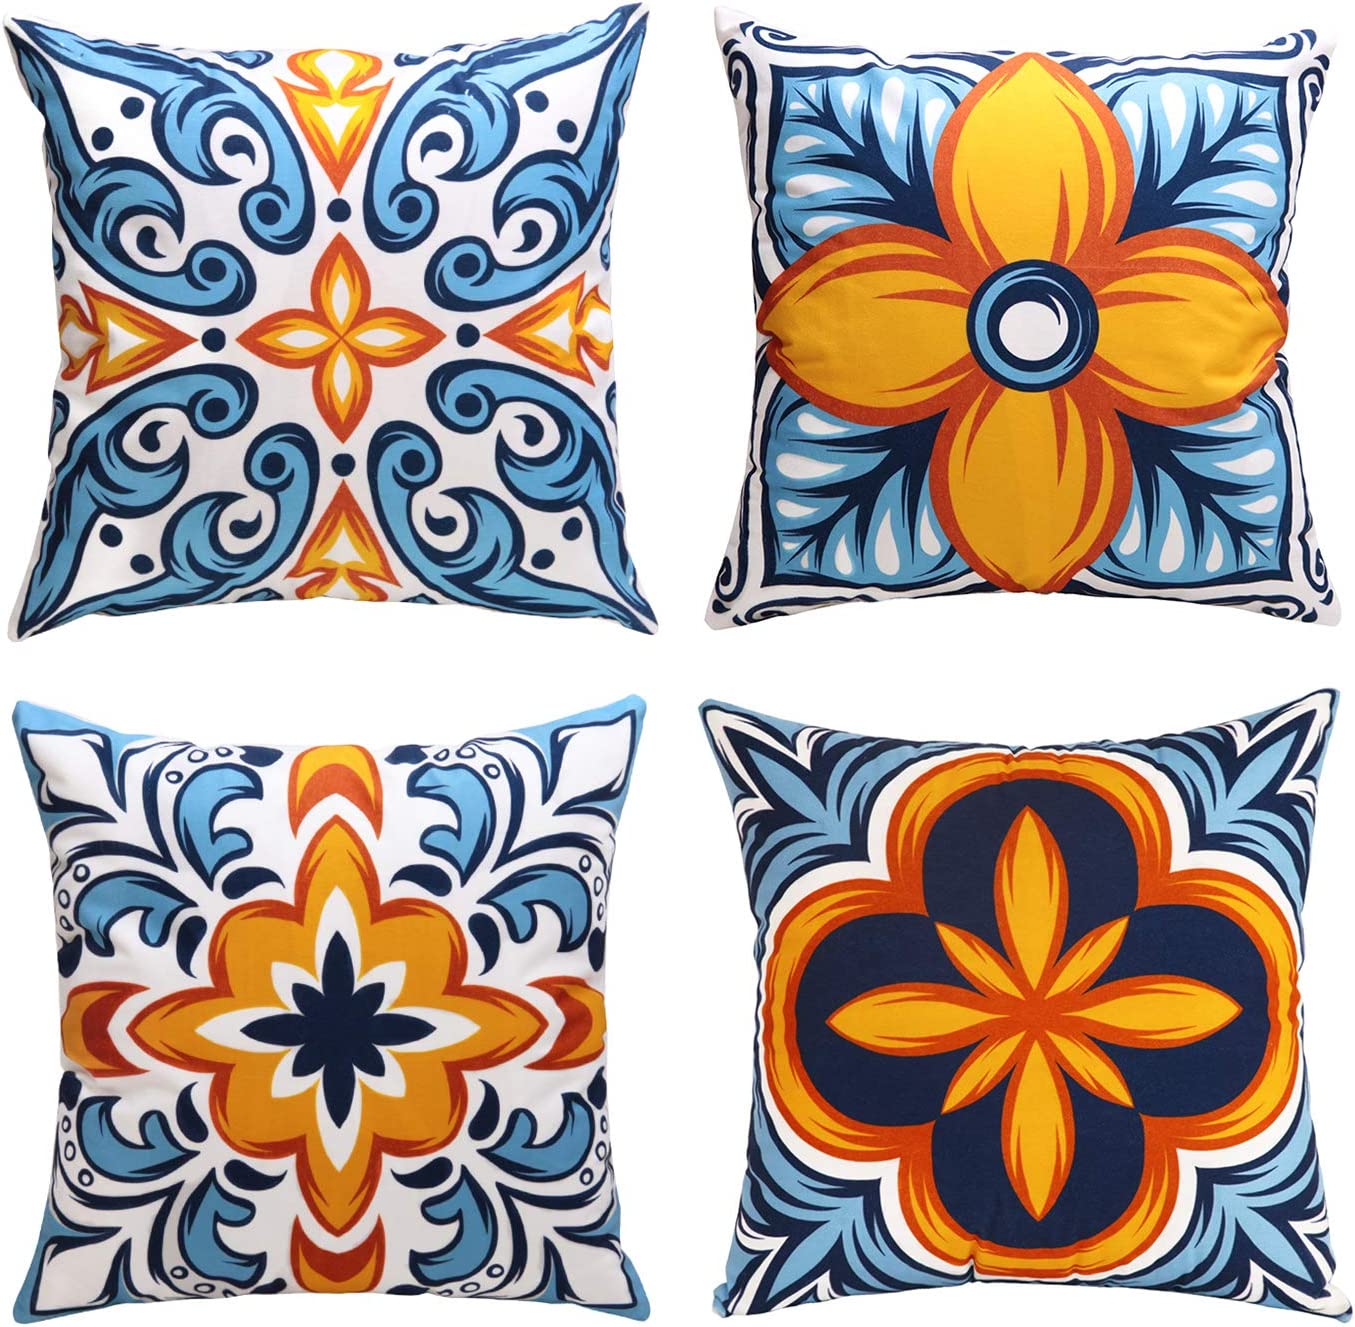 cygnus Farmhouse Throw Pillow Covers 18x18 inch Floral and Boho Retro Pattern Pillowcase Outdoor Decor Cushion Cover Pillow Case Decorative Set of 4